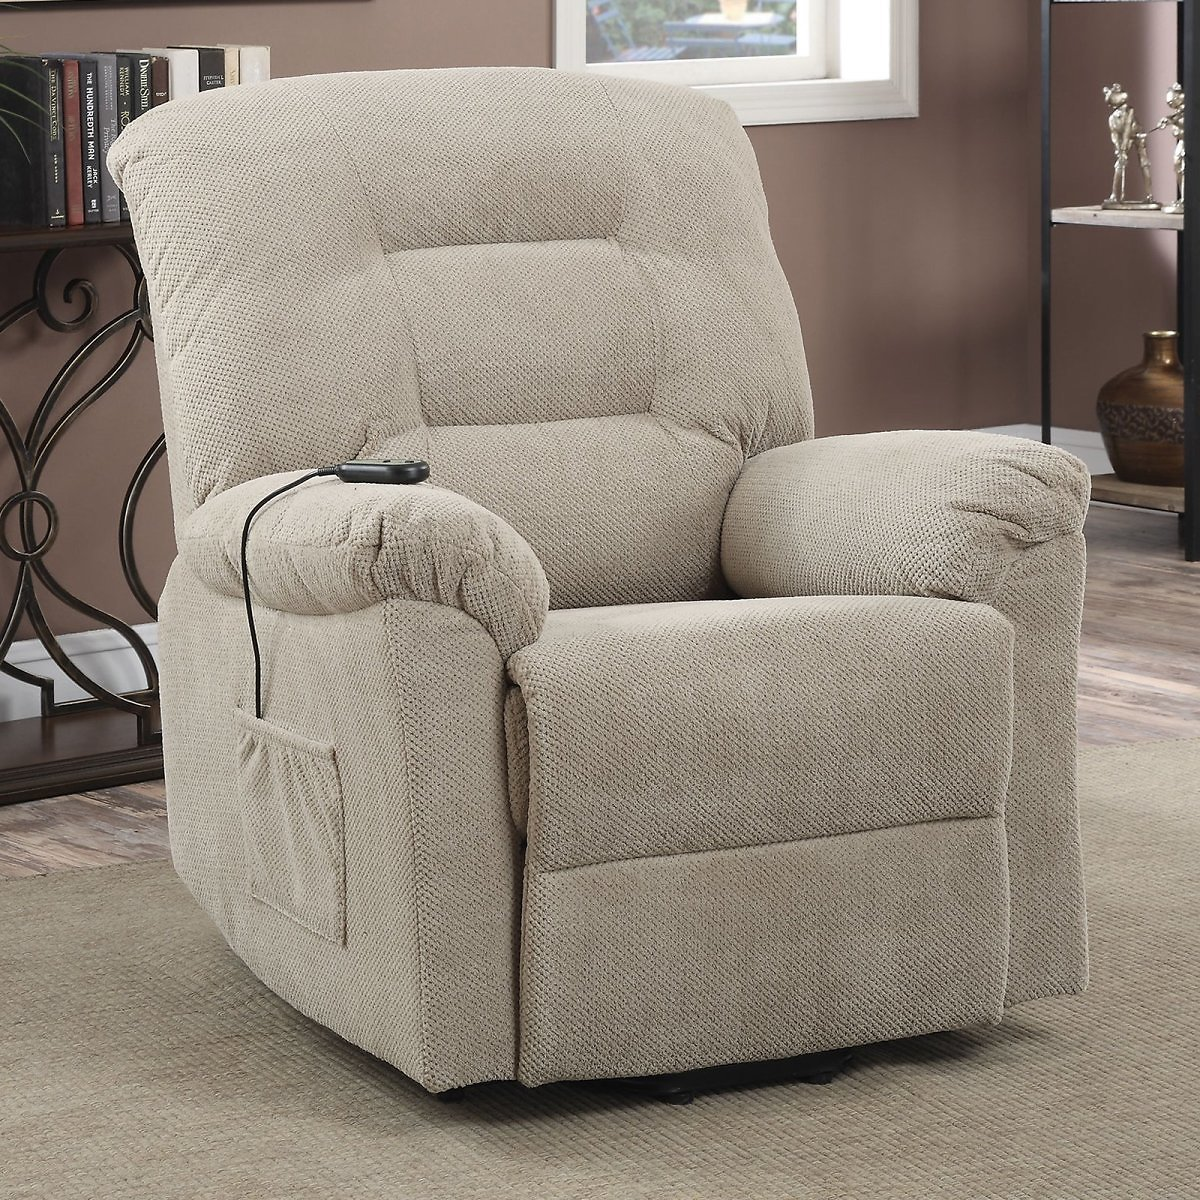 (Ships Free) Coaster Power Lift Recliner, Taupe Textured Chenille